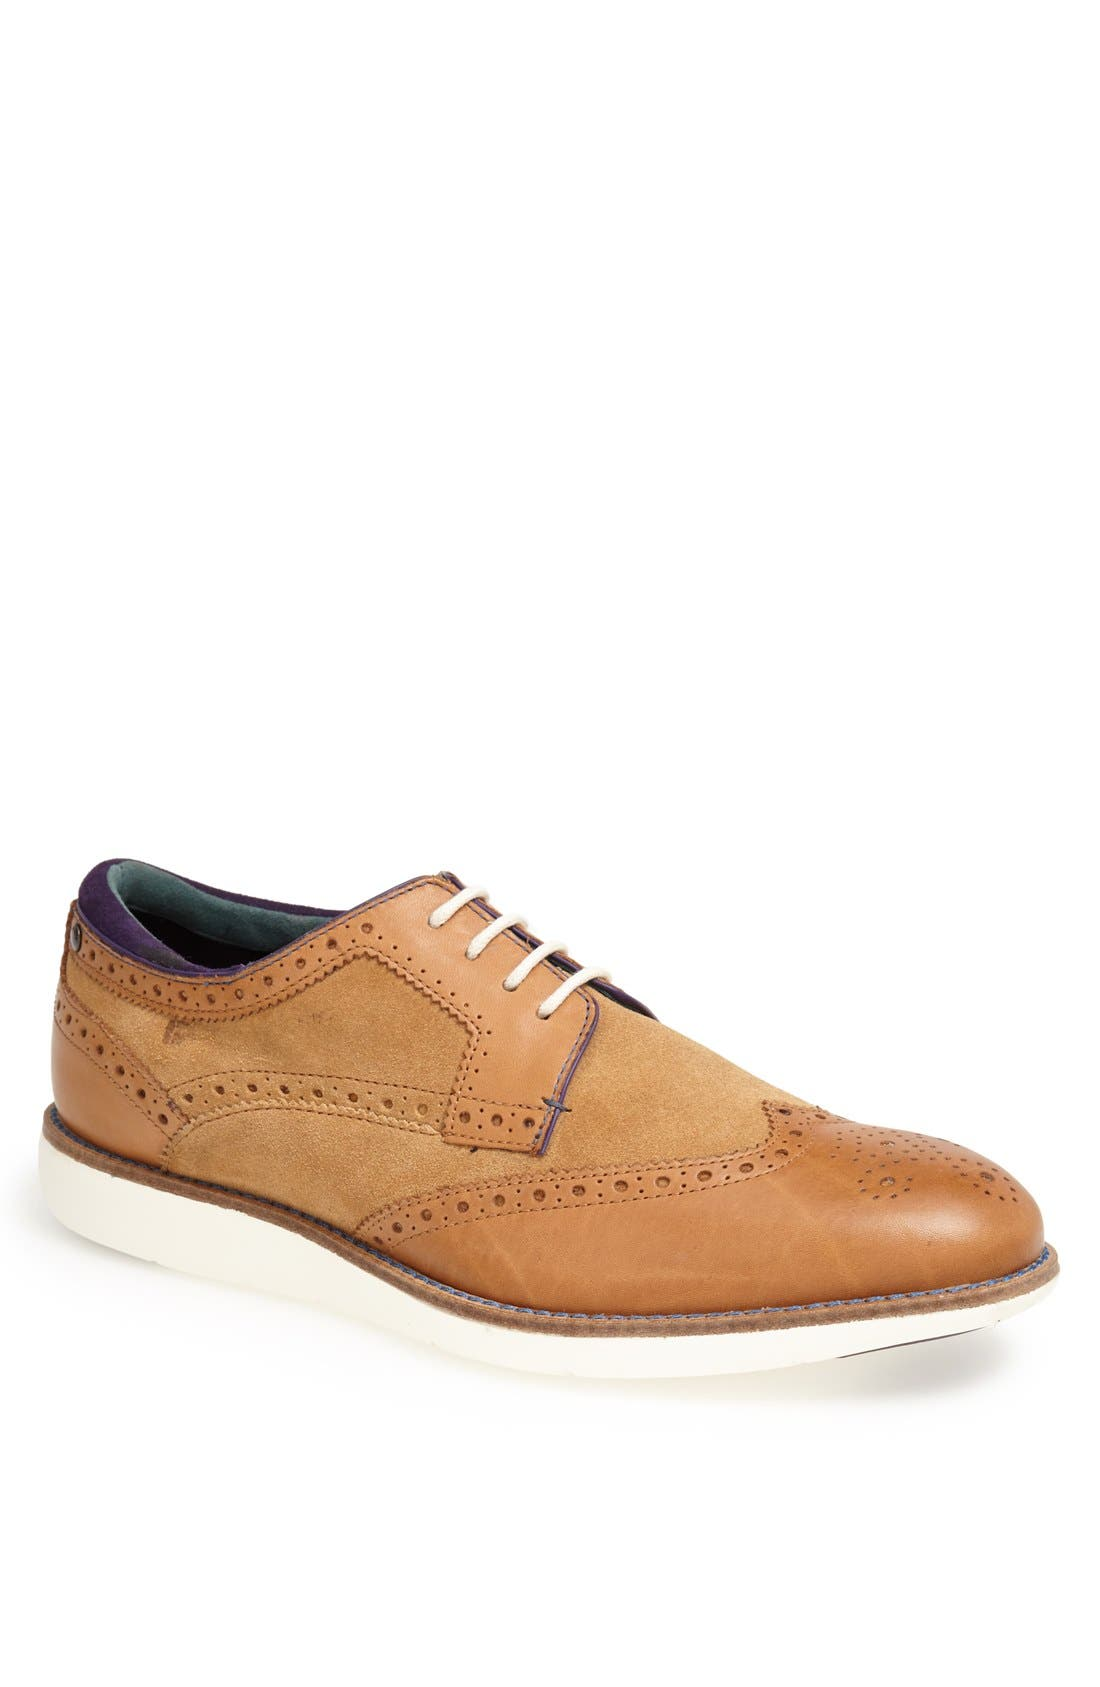 Alternate Image 1 Selected - Ted Baker London 'Treey' Wingtip